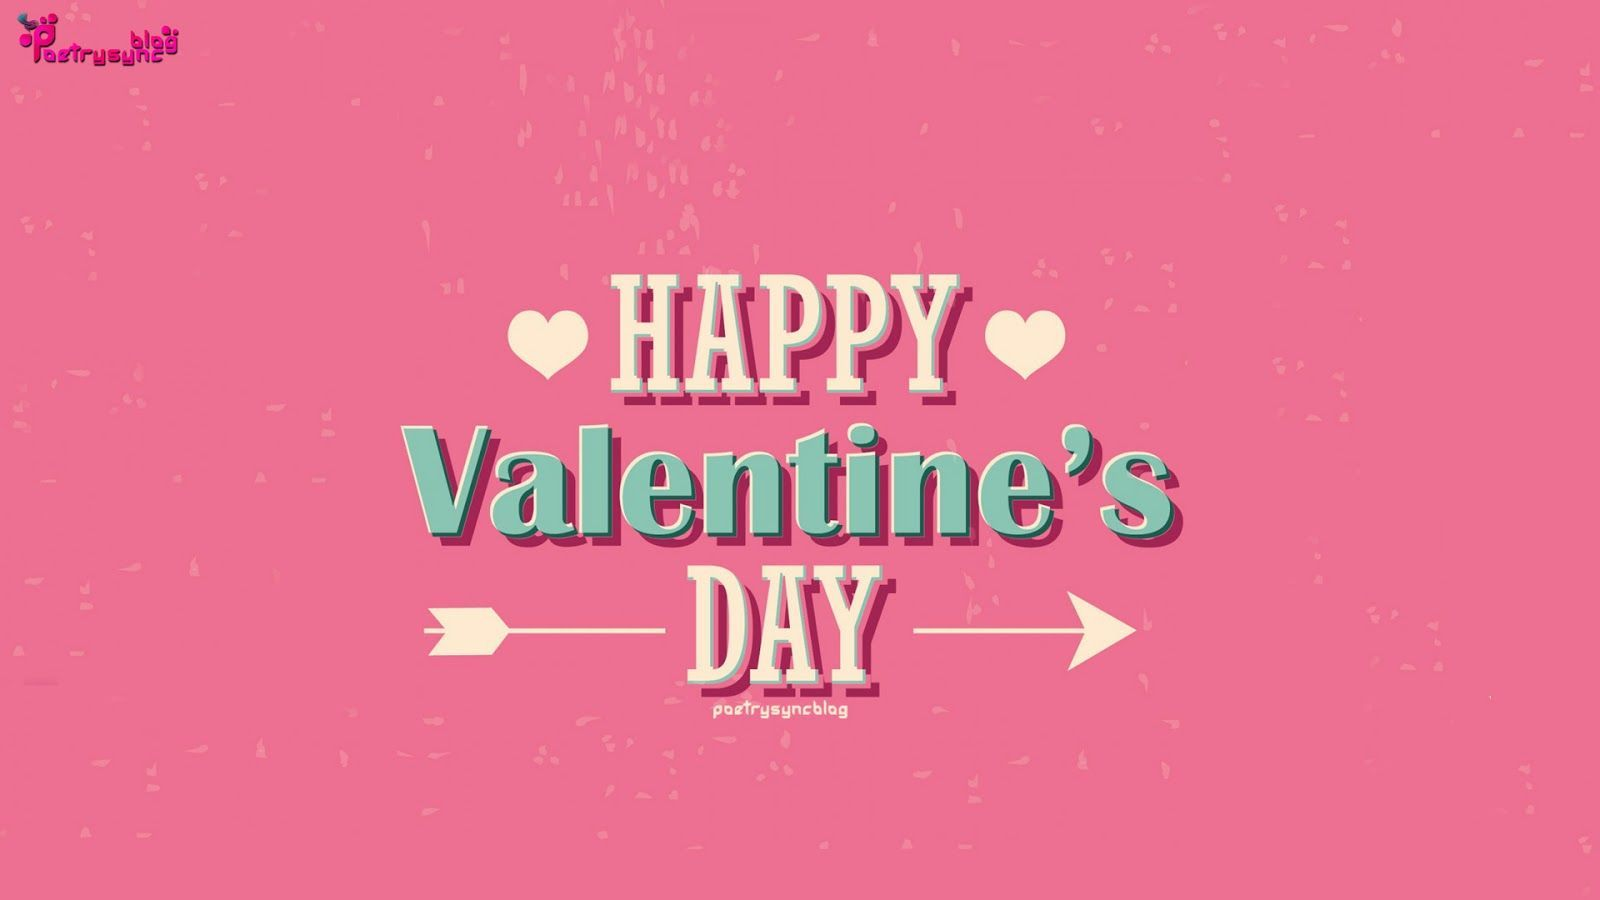 1600x900 Cute Happy Valentines Day Wallpaper Picture, Photo, and Image